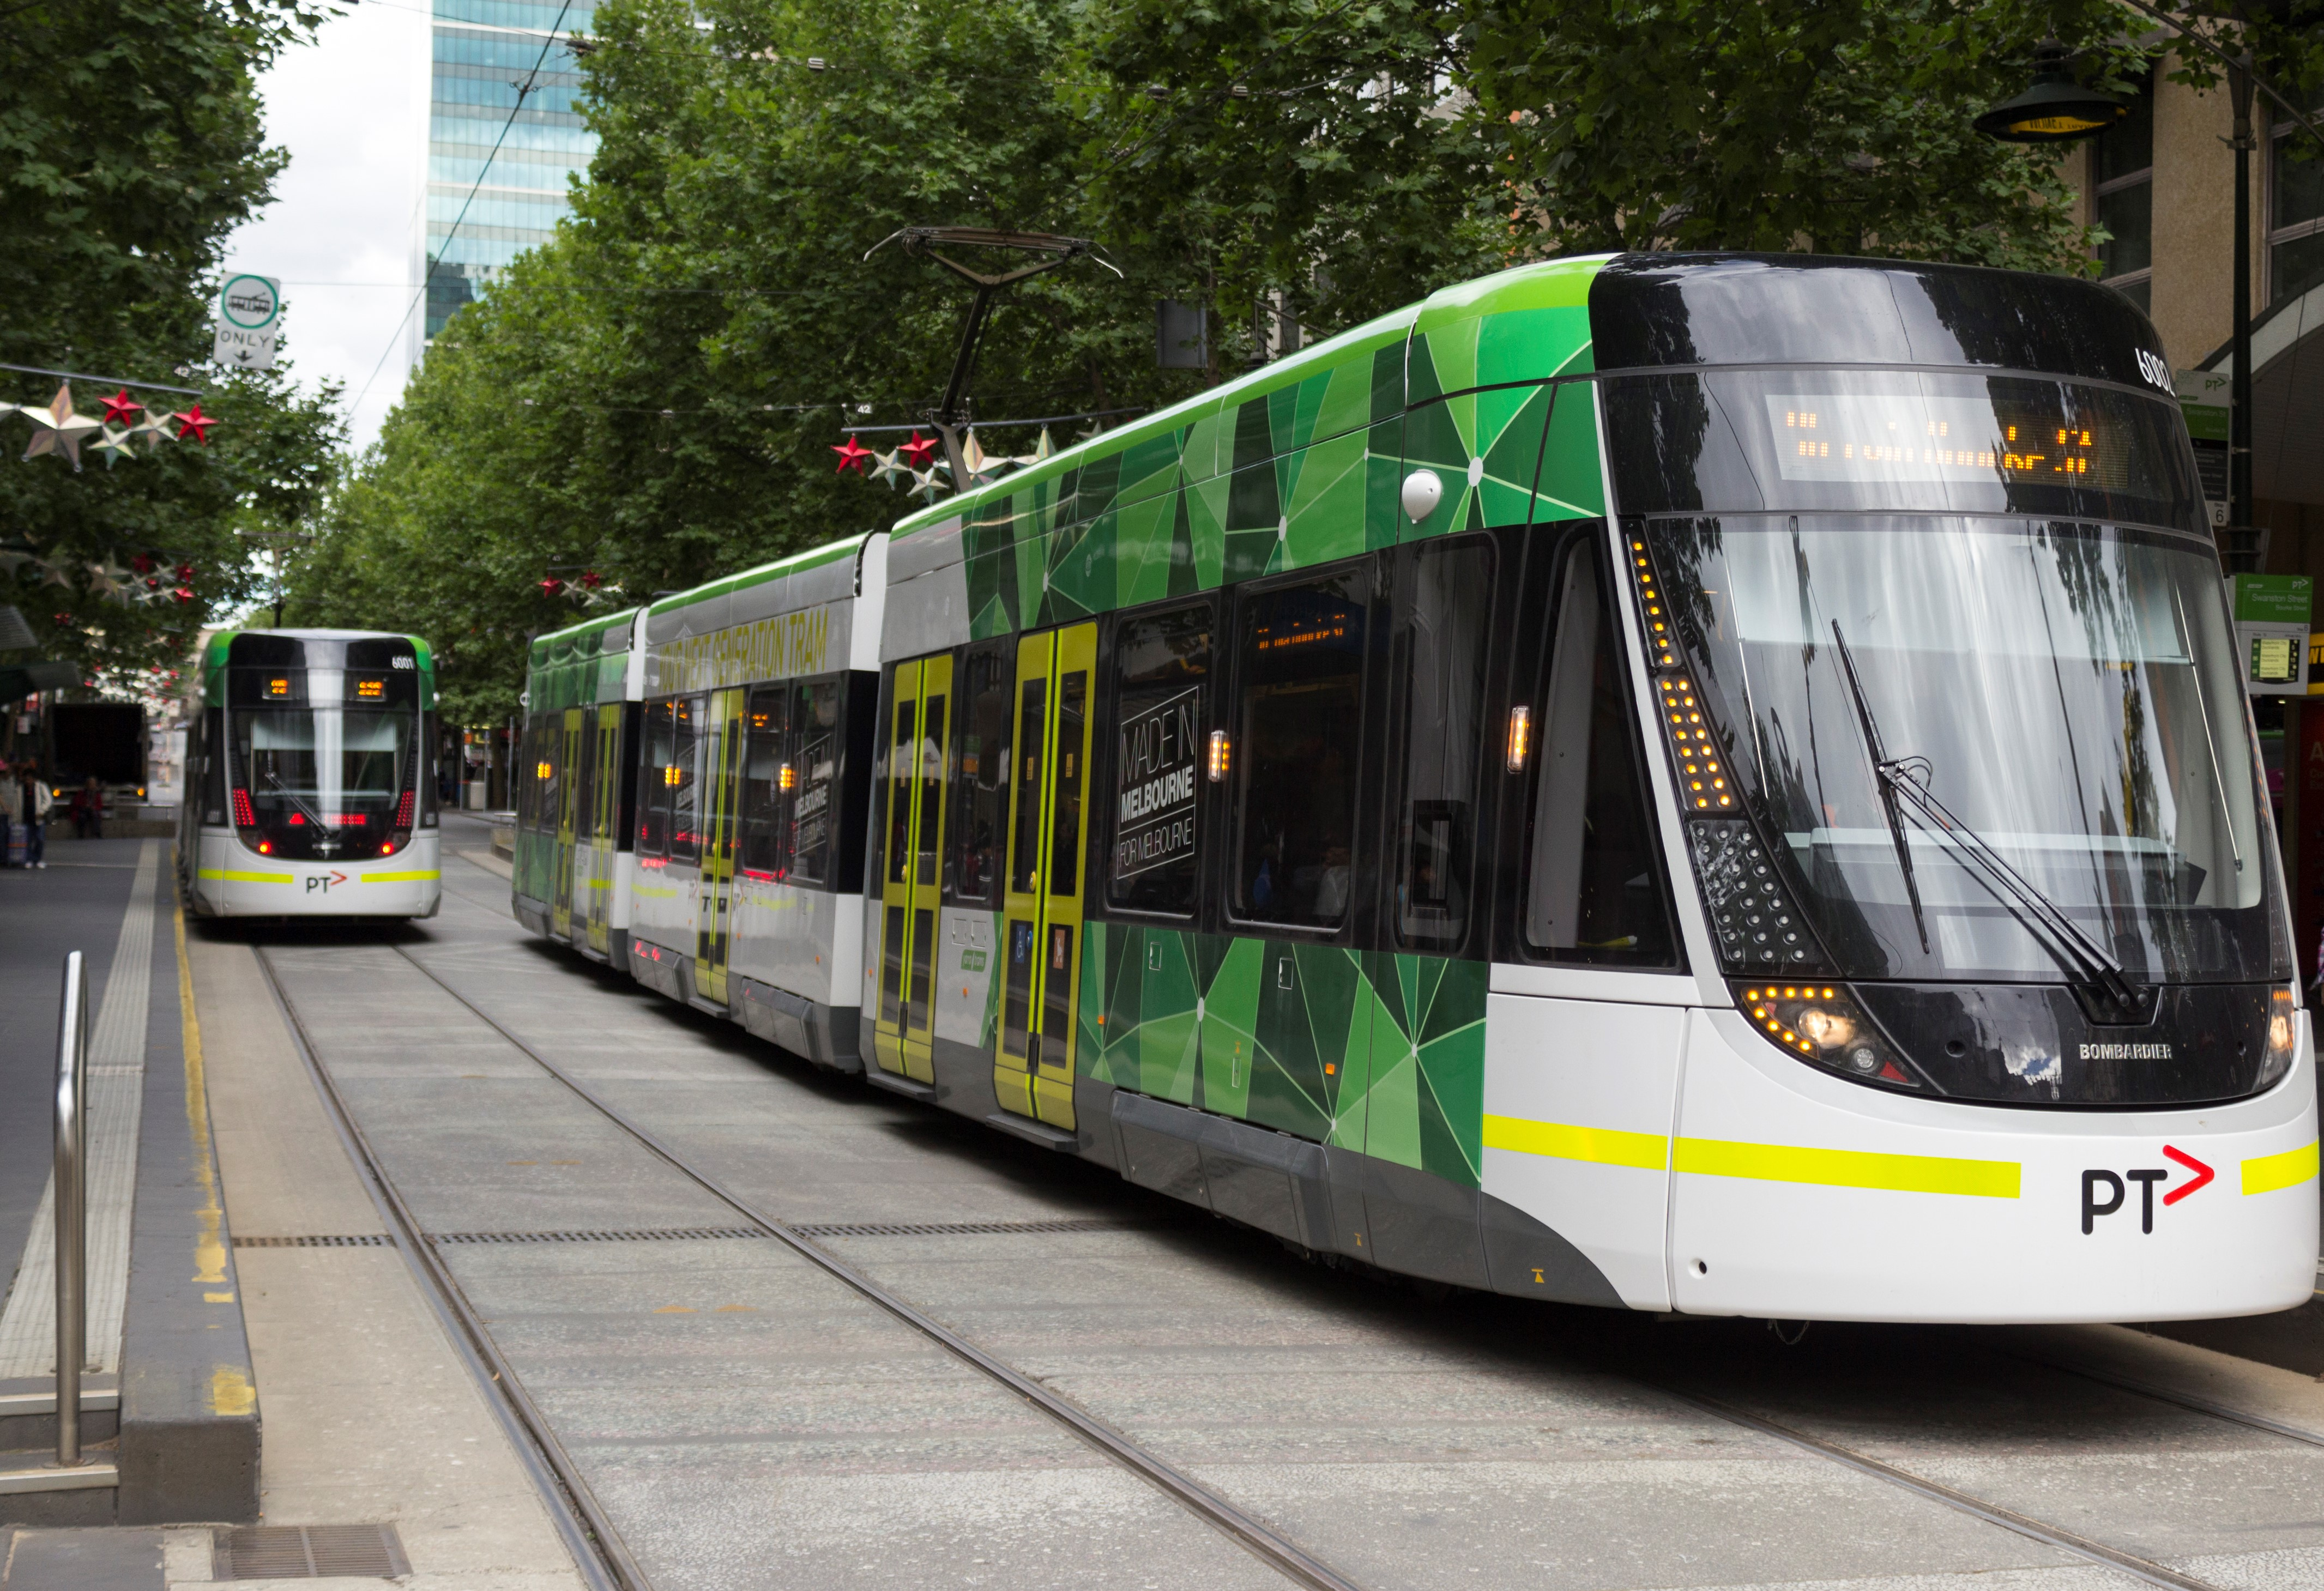 E_6001_and_E_6002_(Melbourne_trams)_in_Bourke_St_on_route_96,_2013